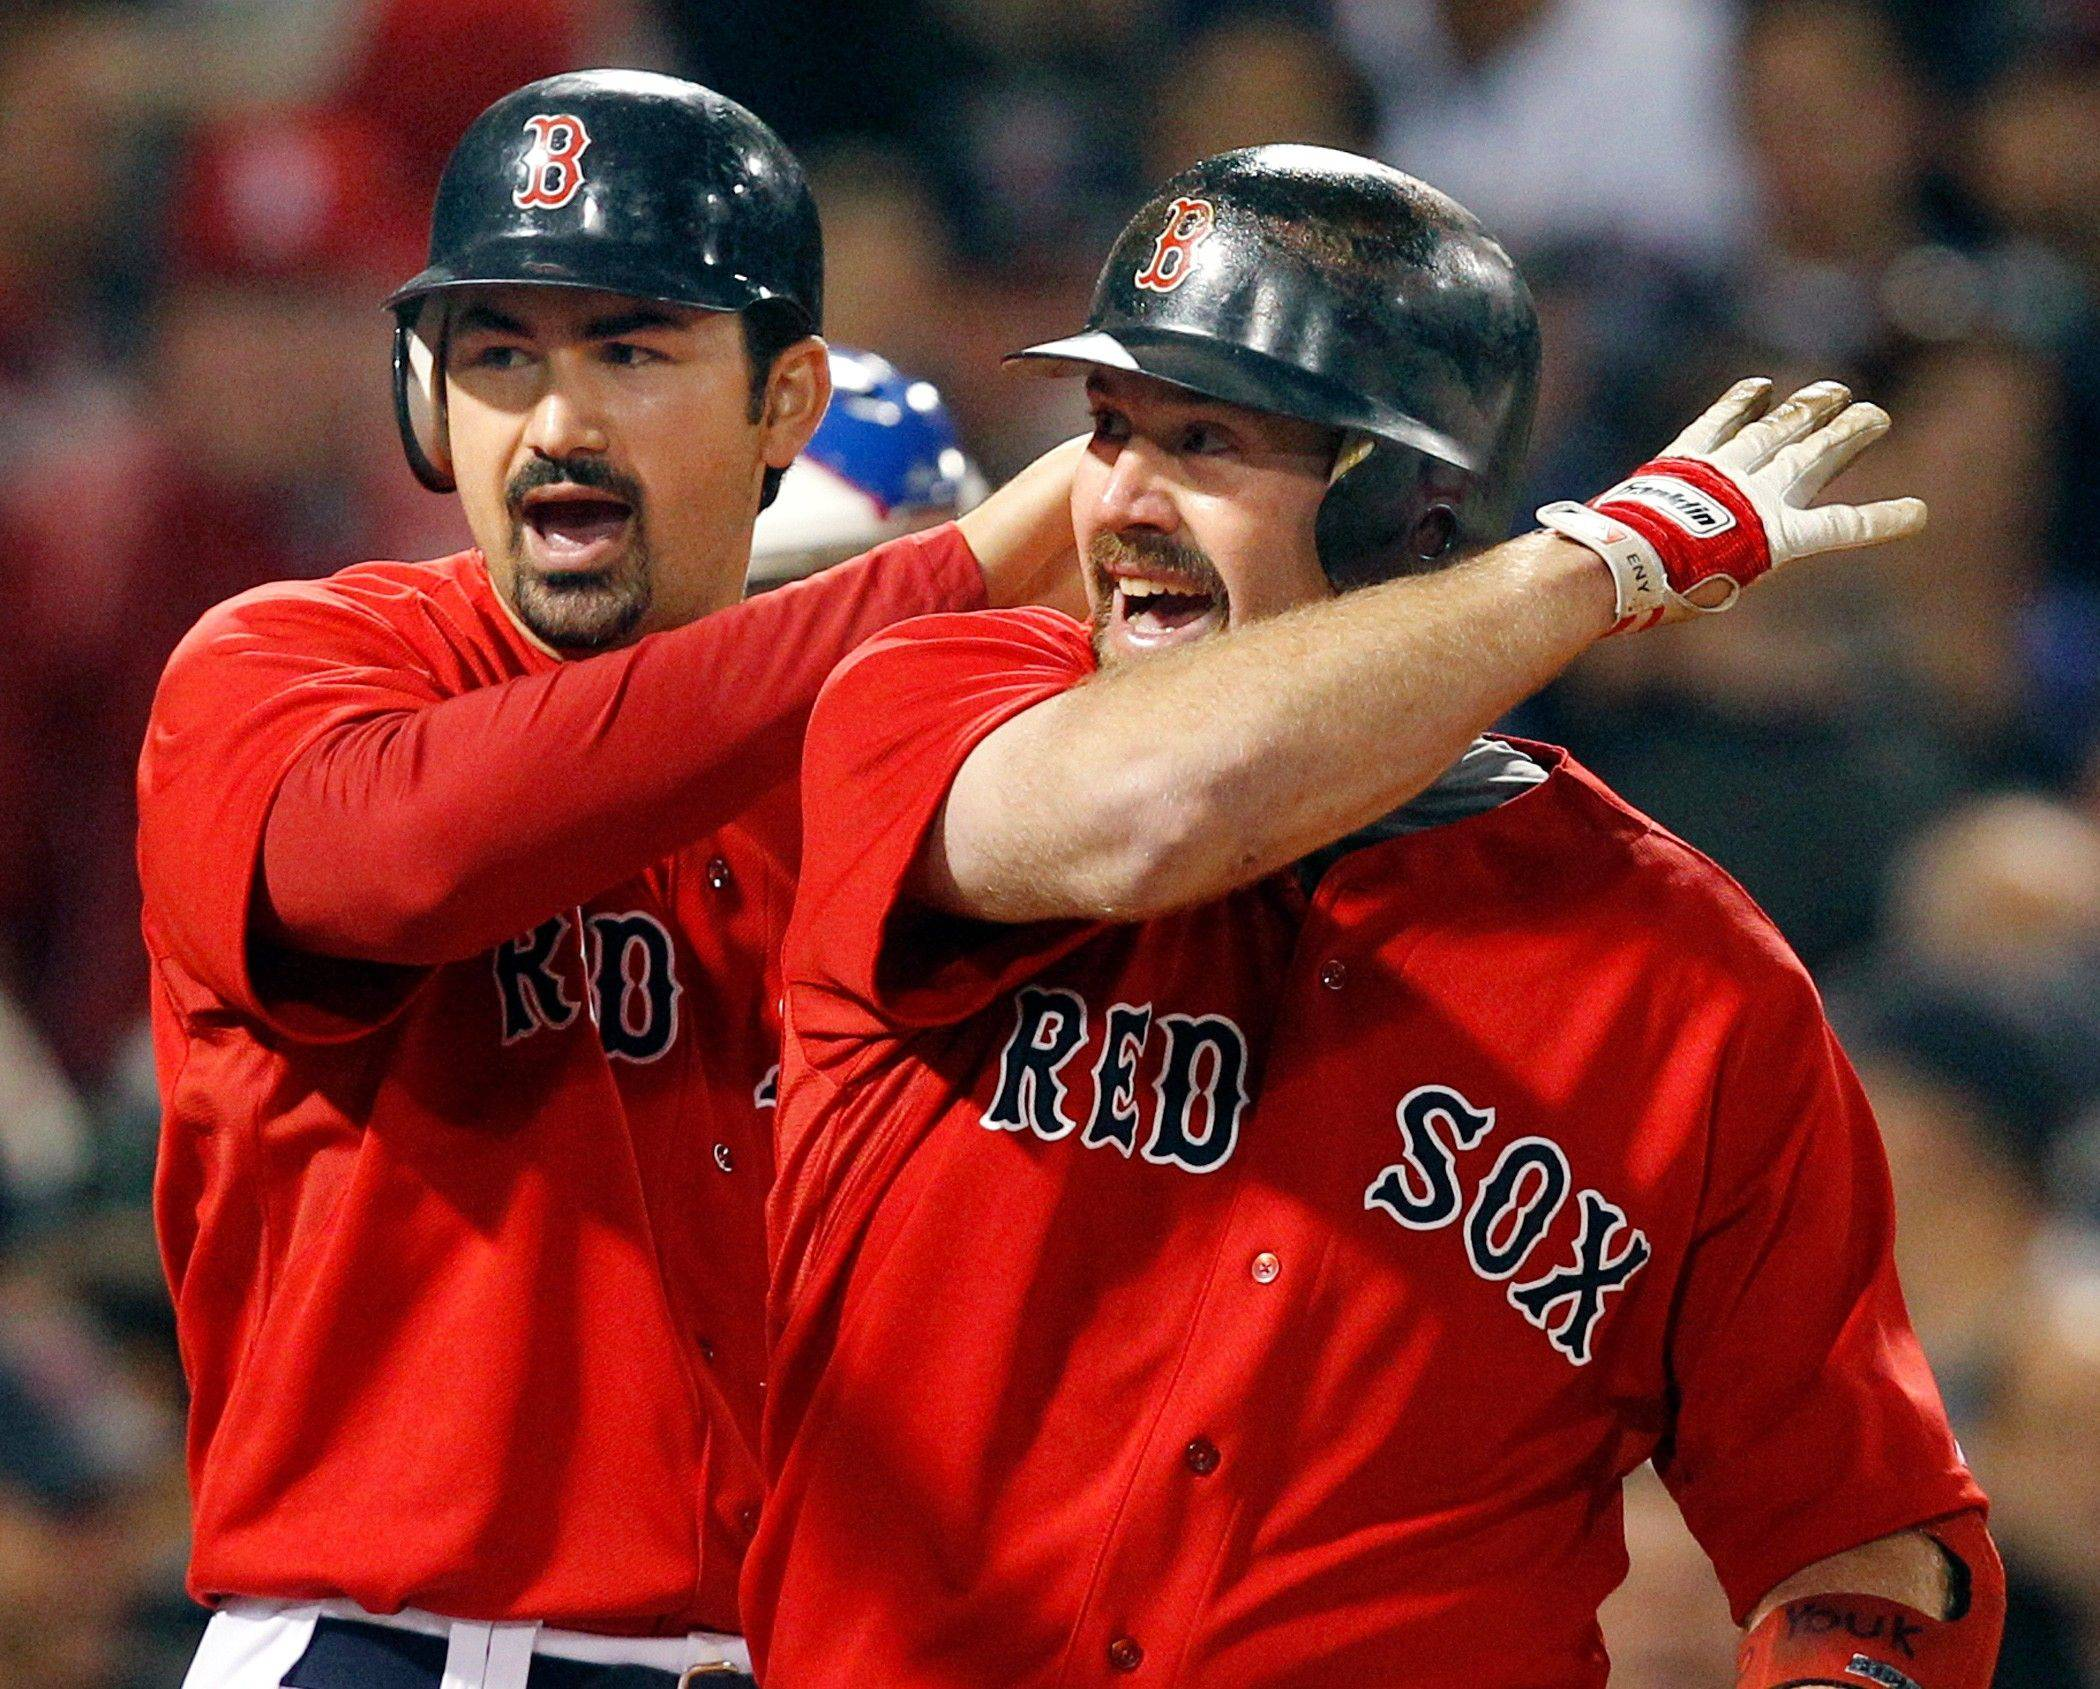 Boston Red Sox's Adrian Gonzalez, left, and Kevin Youkilis celebrate after they scored on Youkilis' two-run home run in the fourth inning of an interleague baseball game against the Chicago Cubs at Fenway Park in Boston Friday, May 20, 2011.